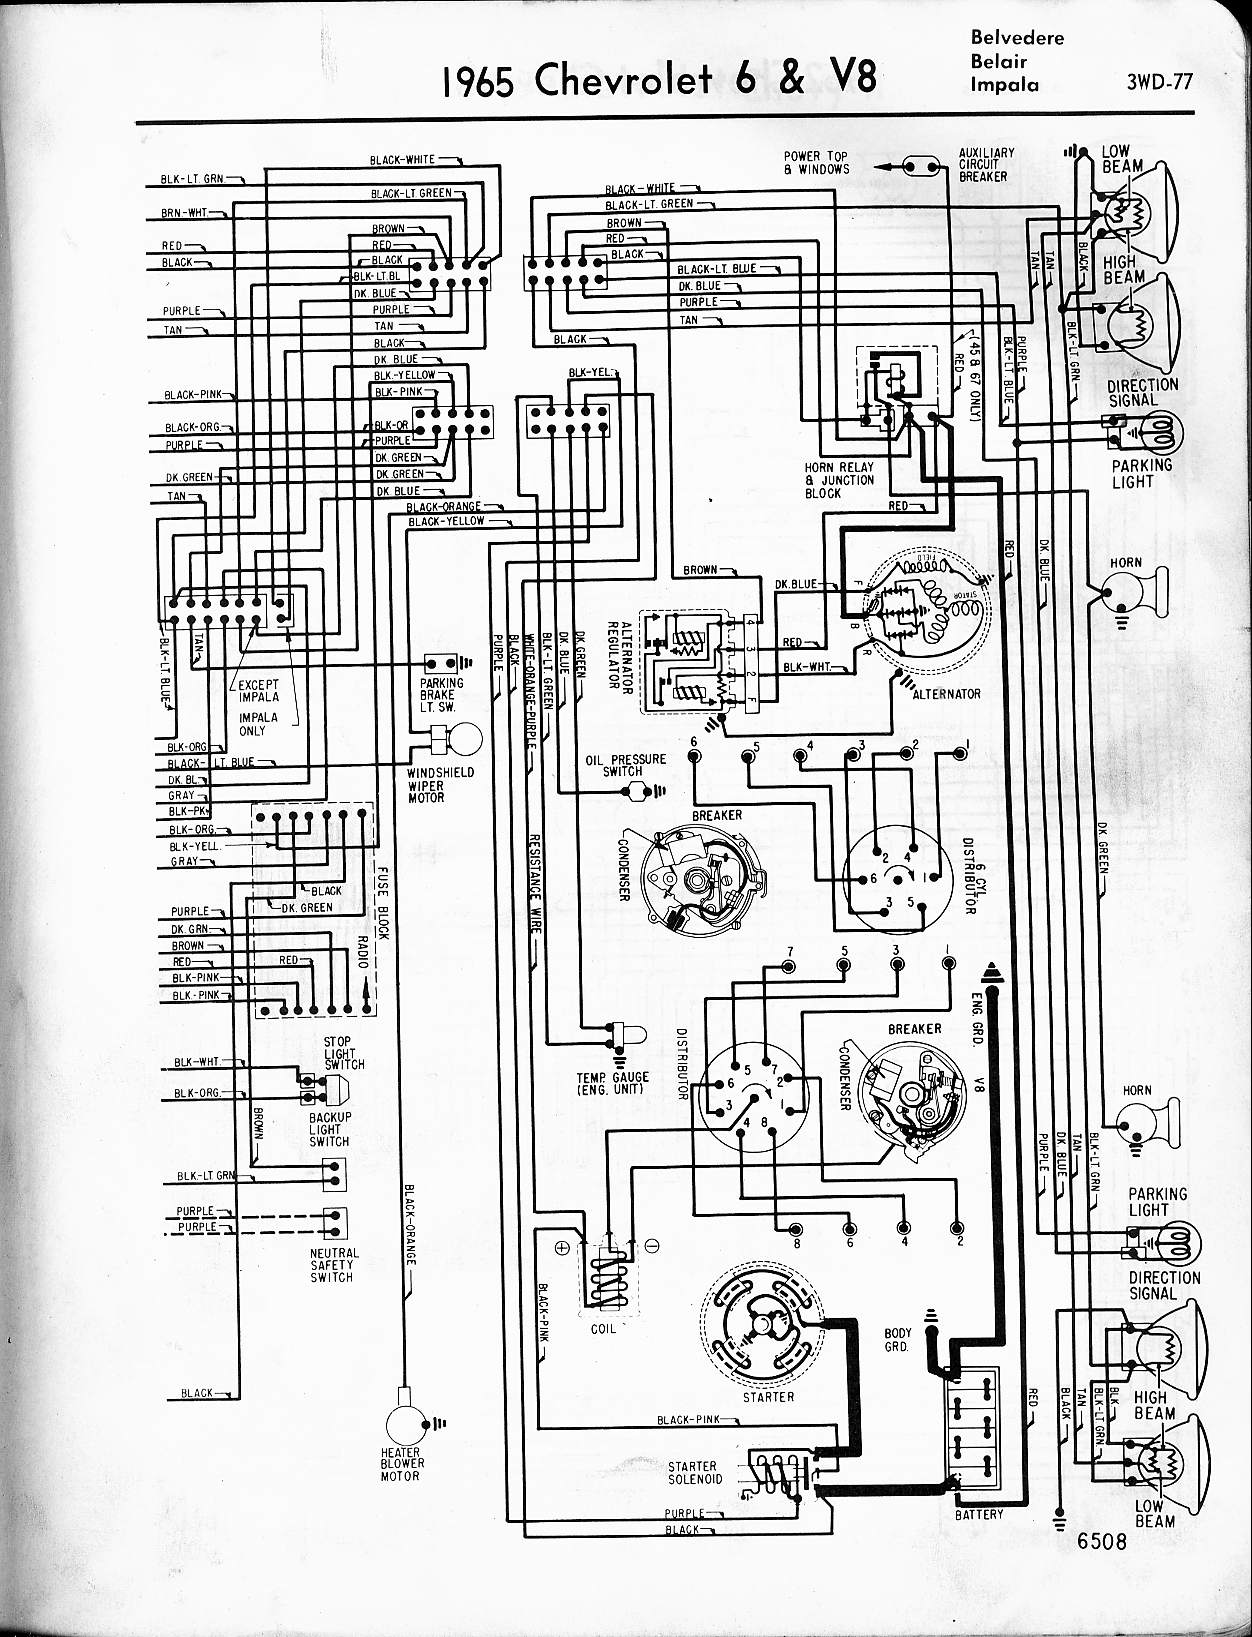 MWireChev65_3WD 077 57 65 chevy wiring diagrams 1965 c10 wiring diagram at mifinder.co